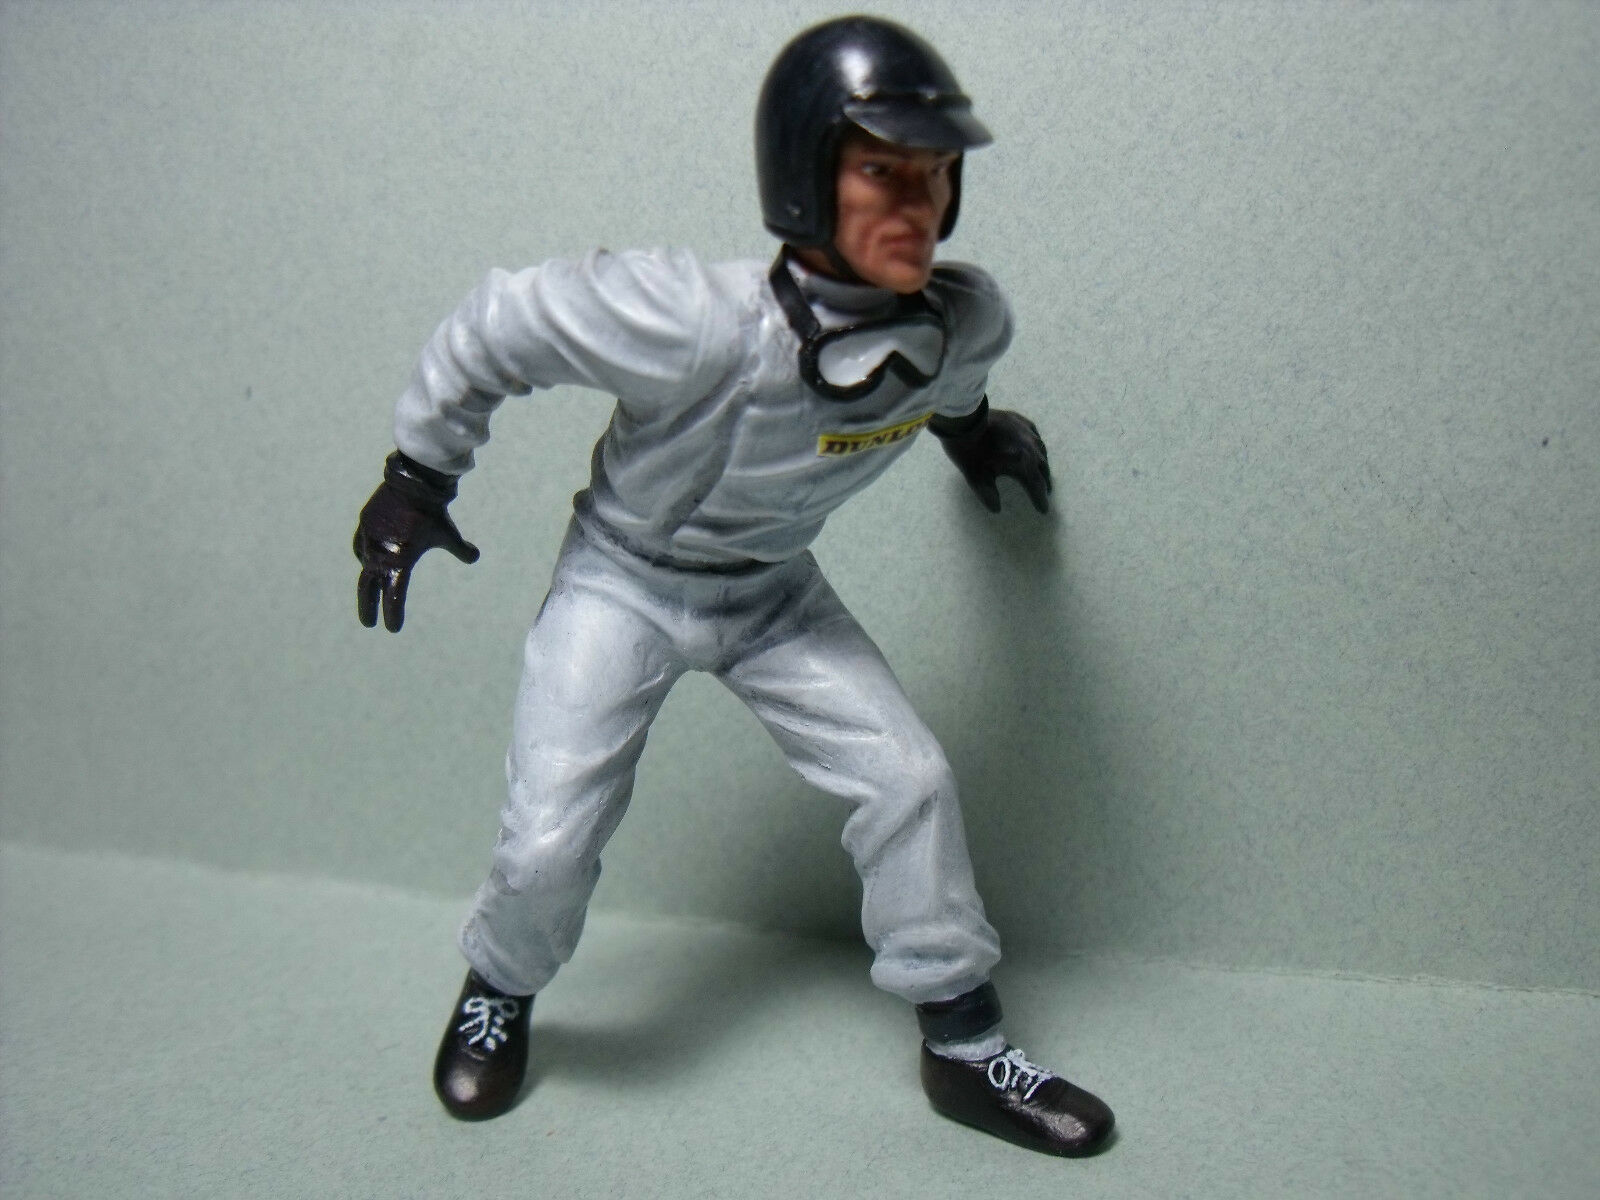 1 18  FIGURE  DAN  GURNEY  PAINTED  BY  VROOM   FOR   AUTOART  VERY  RARE